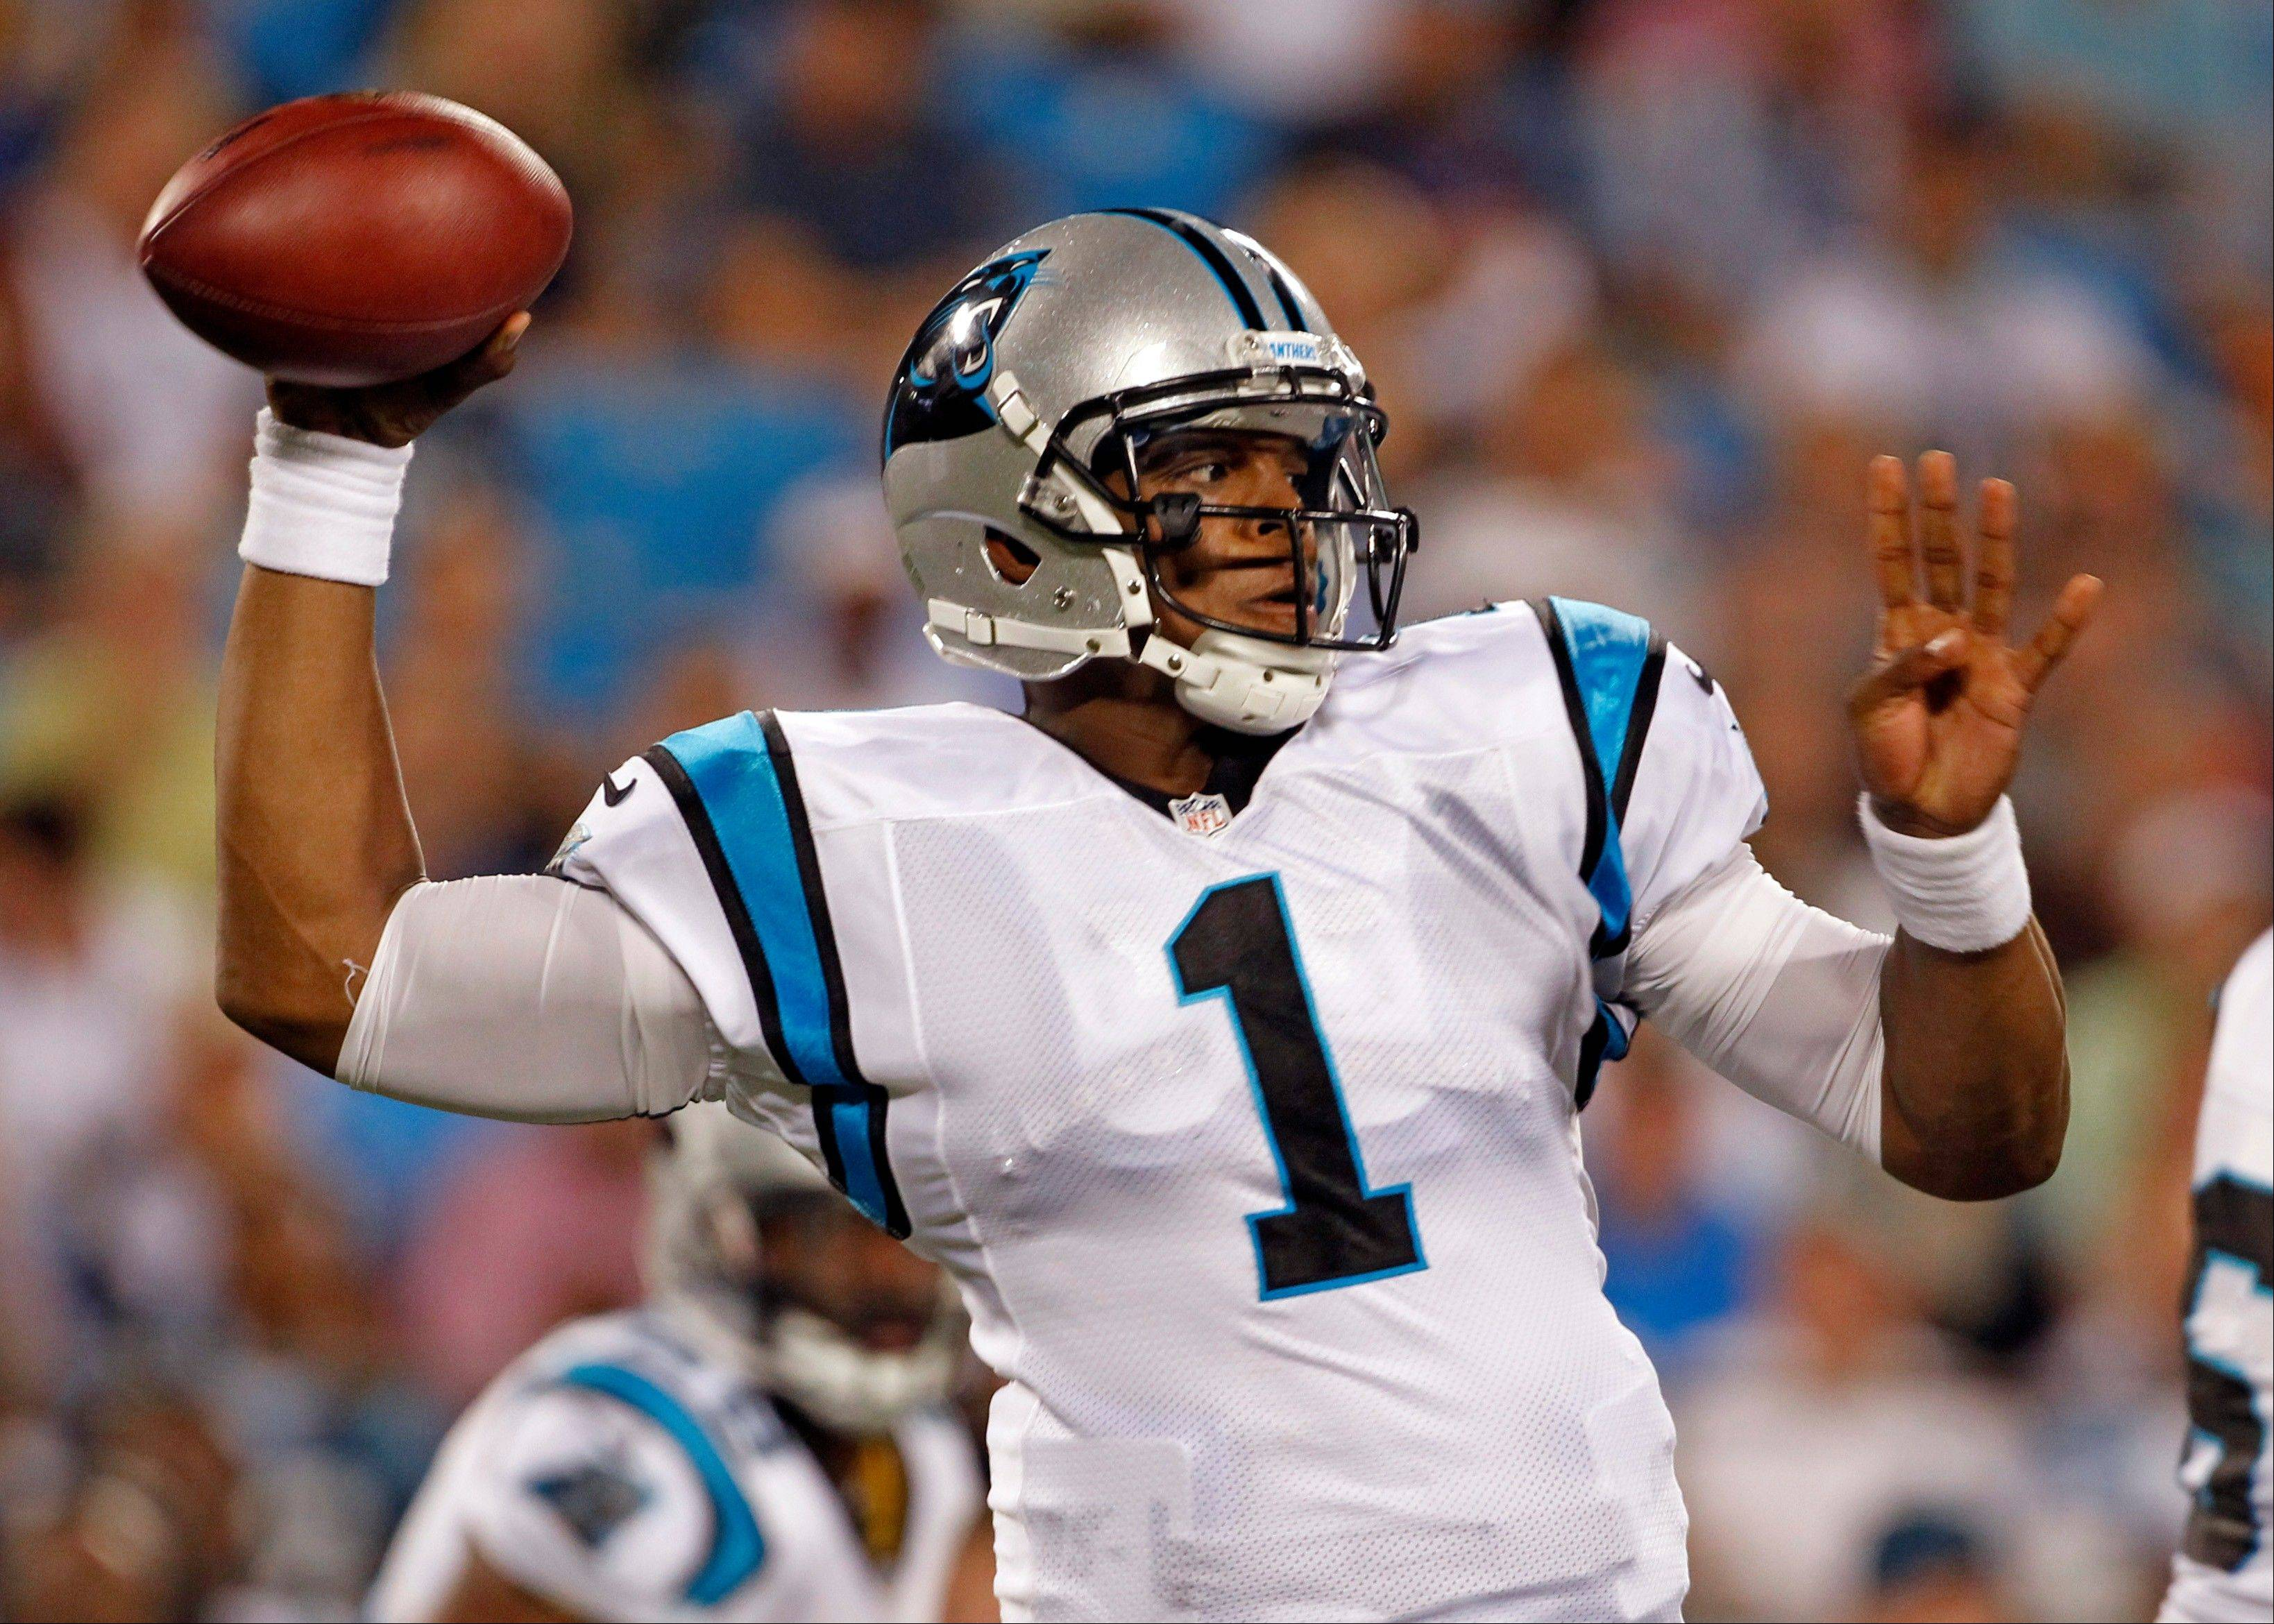 Quarterback Cam Newton led the Panthers to two touchdowns and a field goal in his three possessions Friday night against Miami in preseason action in Charlotte, N.C.